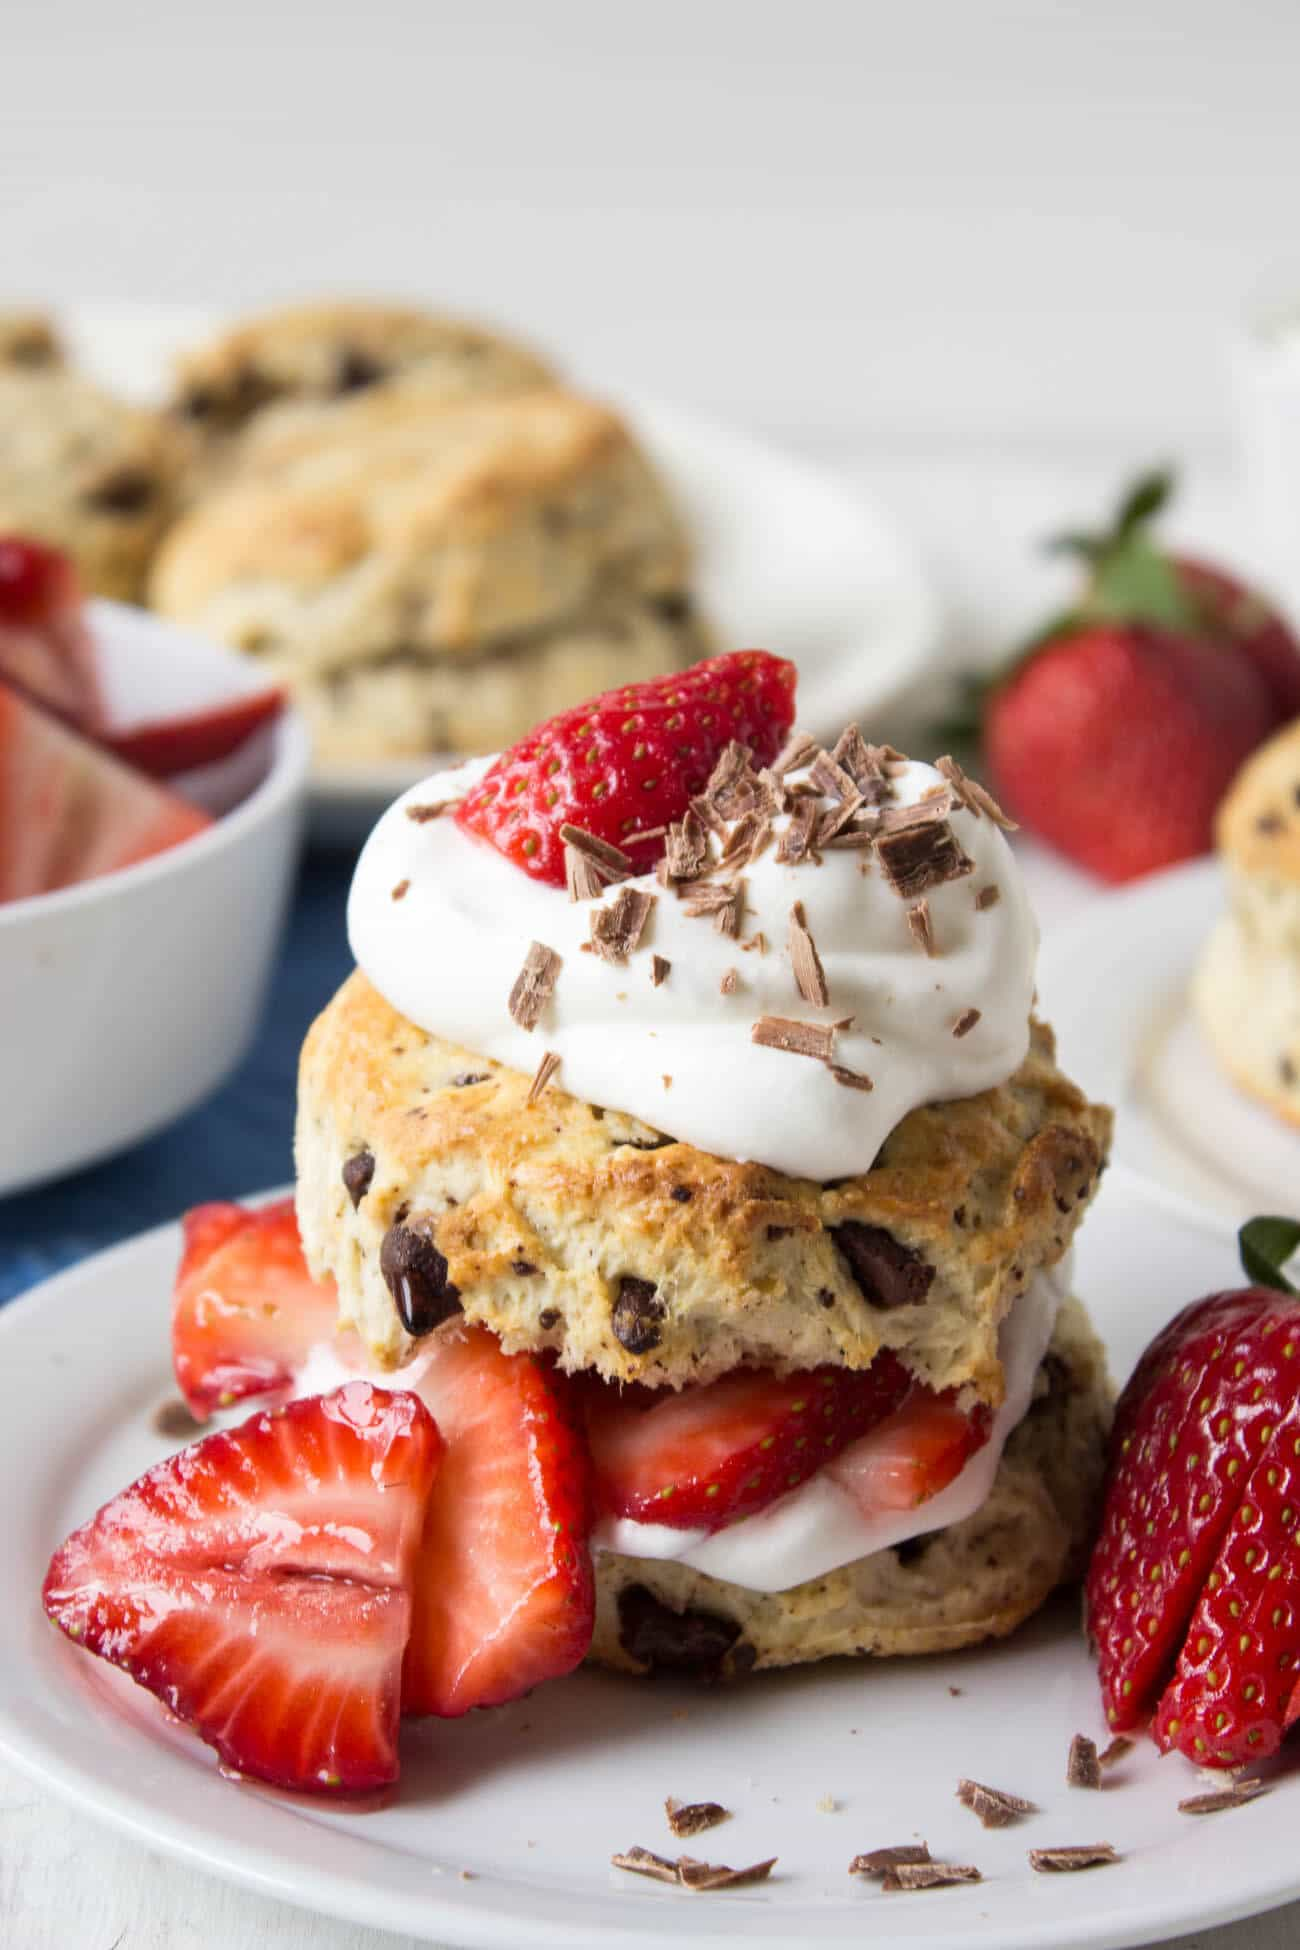 Strawberry Chocolate Shortcake from Beyond the Chicken Coop